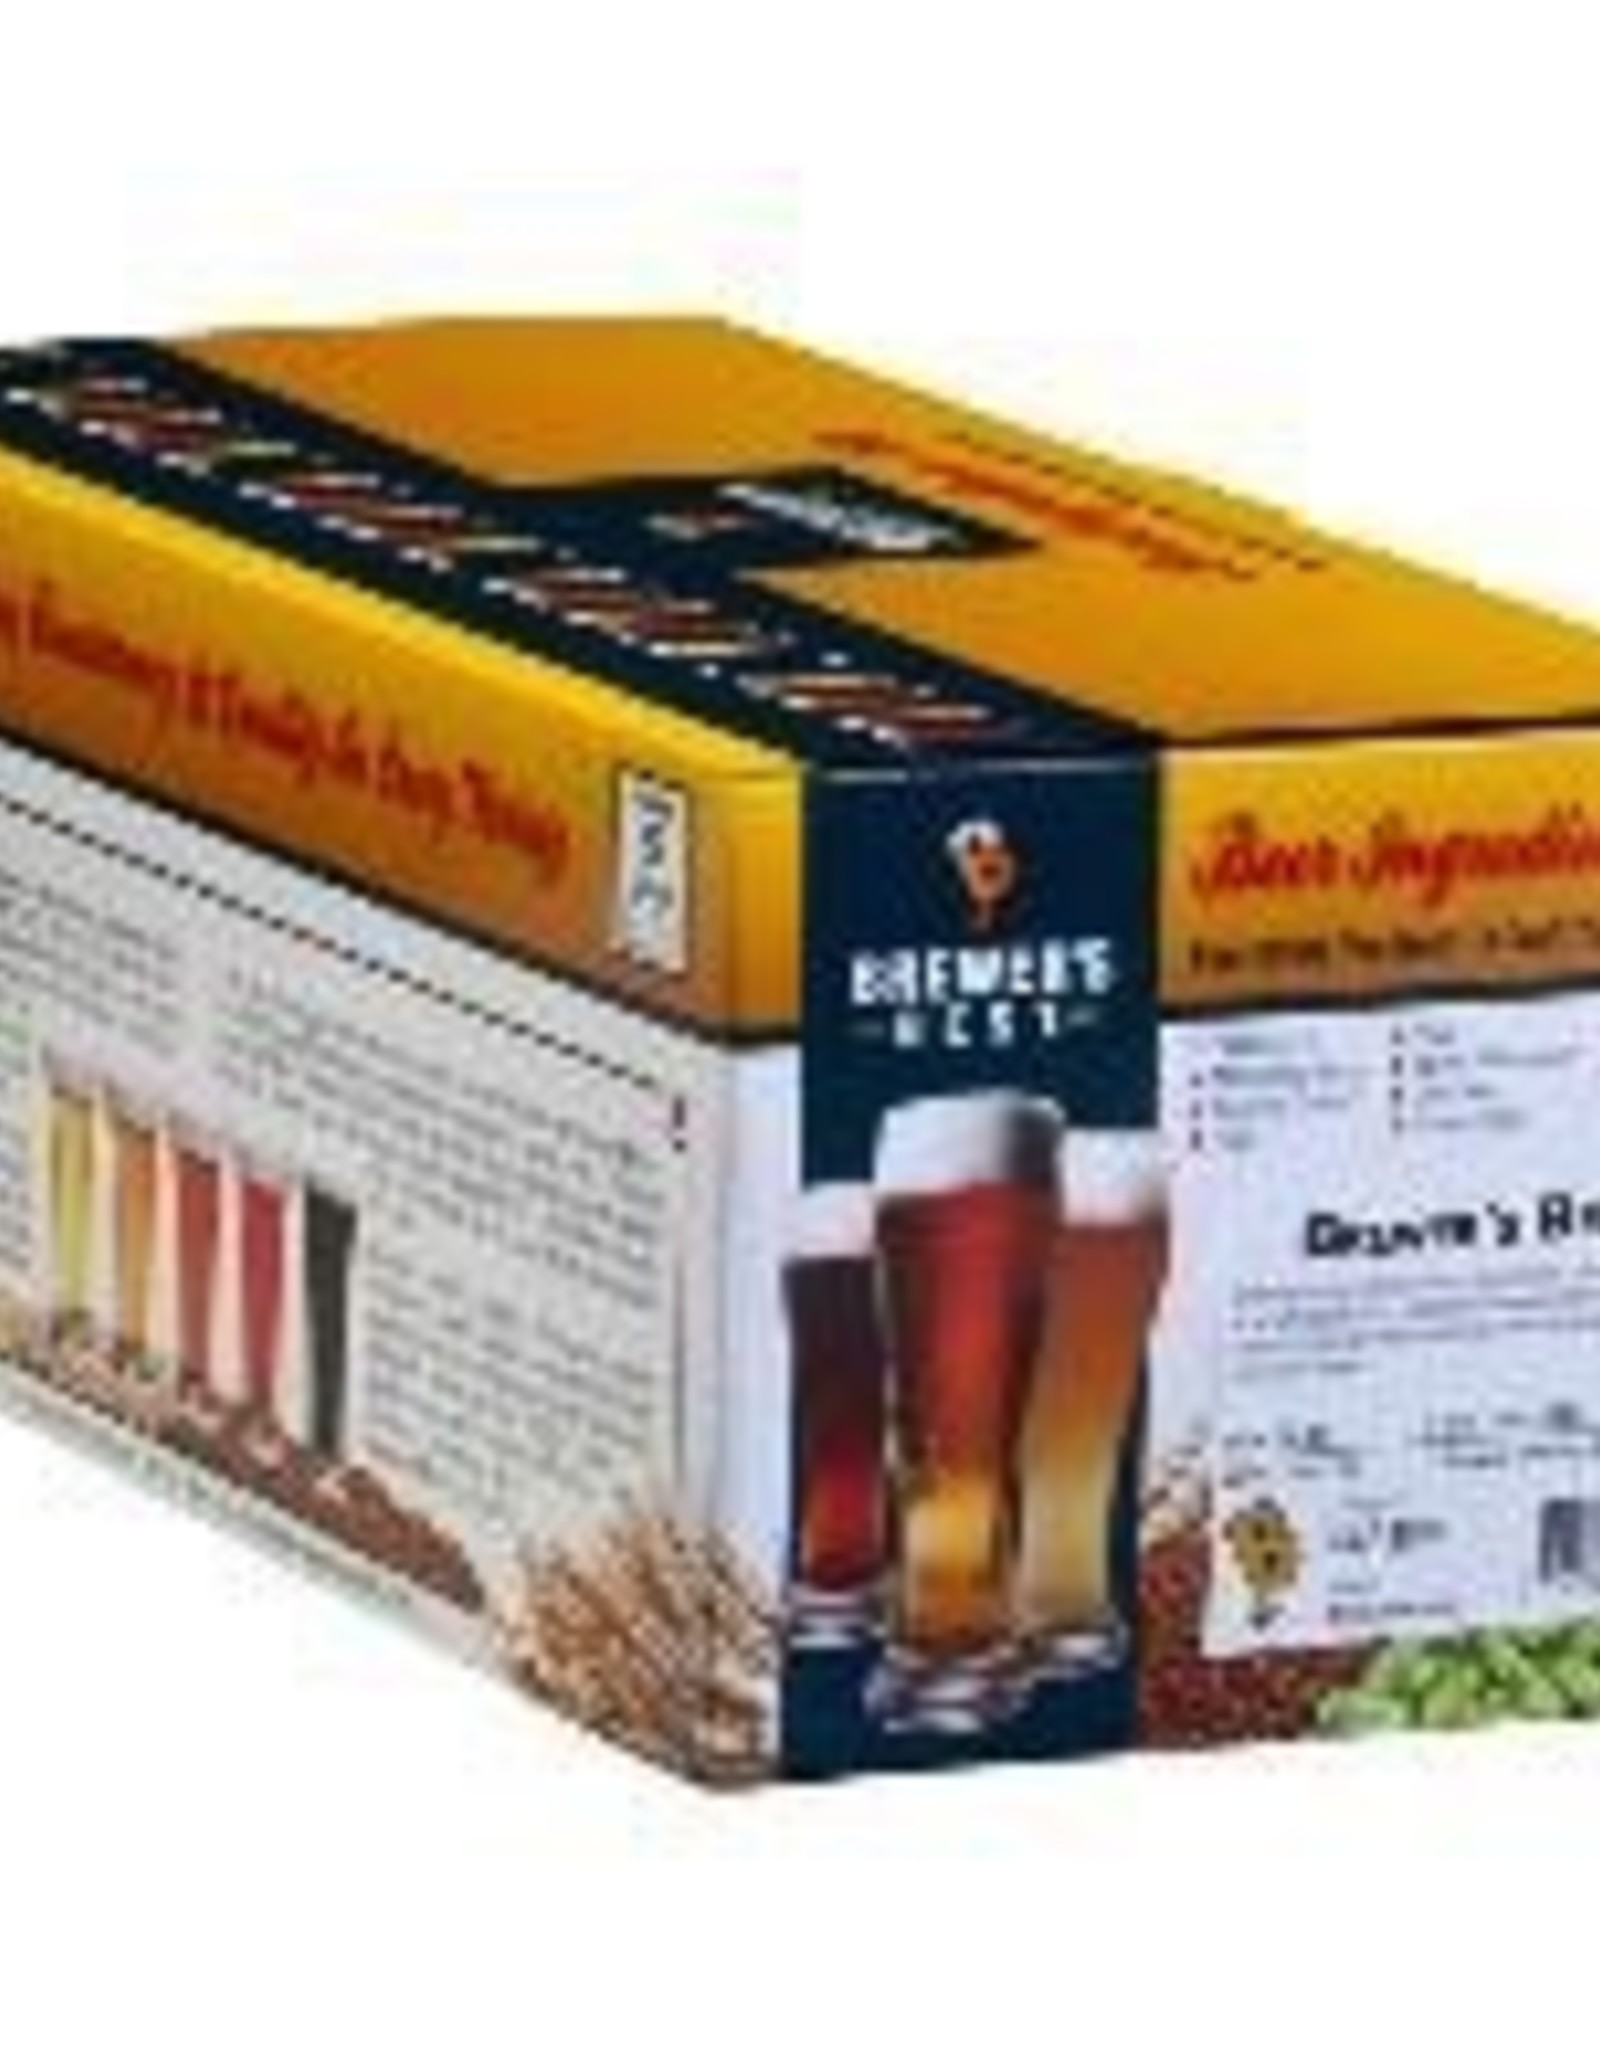 BREWERS BEST EXTRA IPA - HOP ROTATOR SERIES INGREDIENT PACKAGE (PREMIUM)